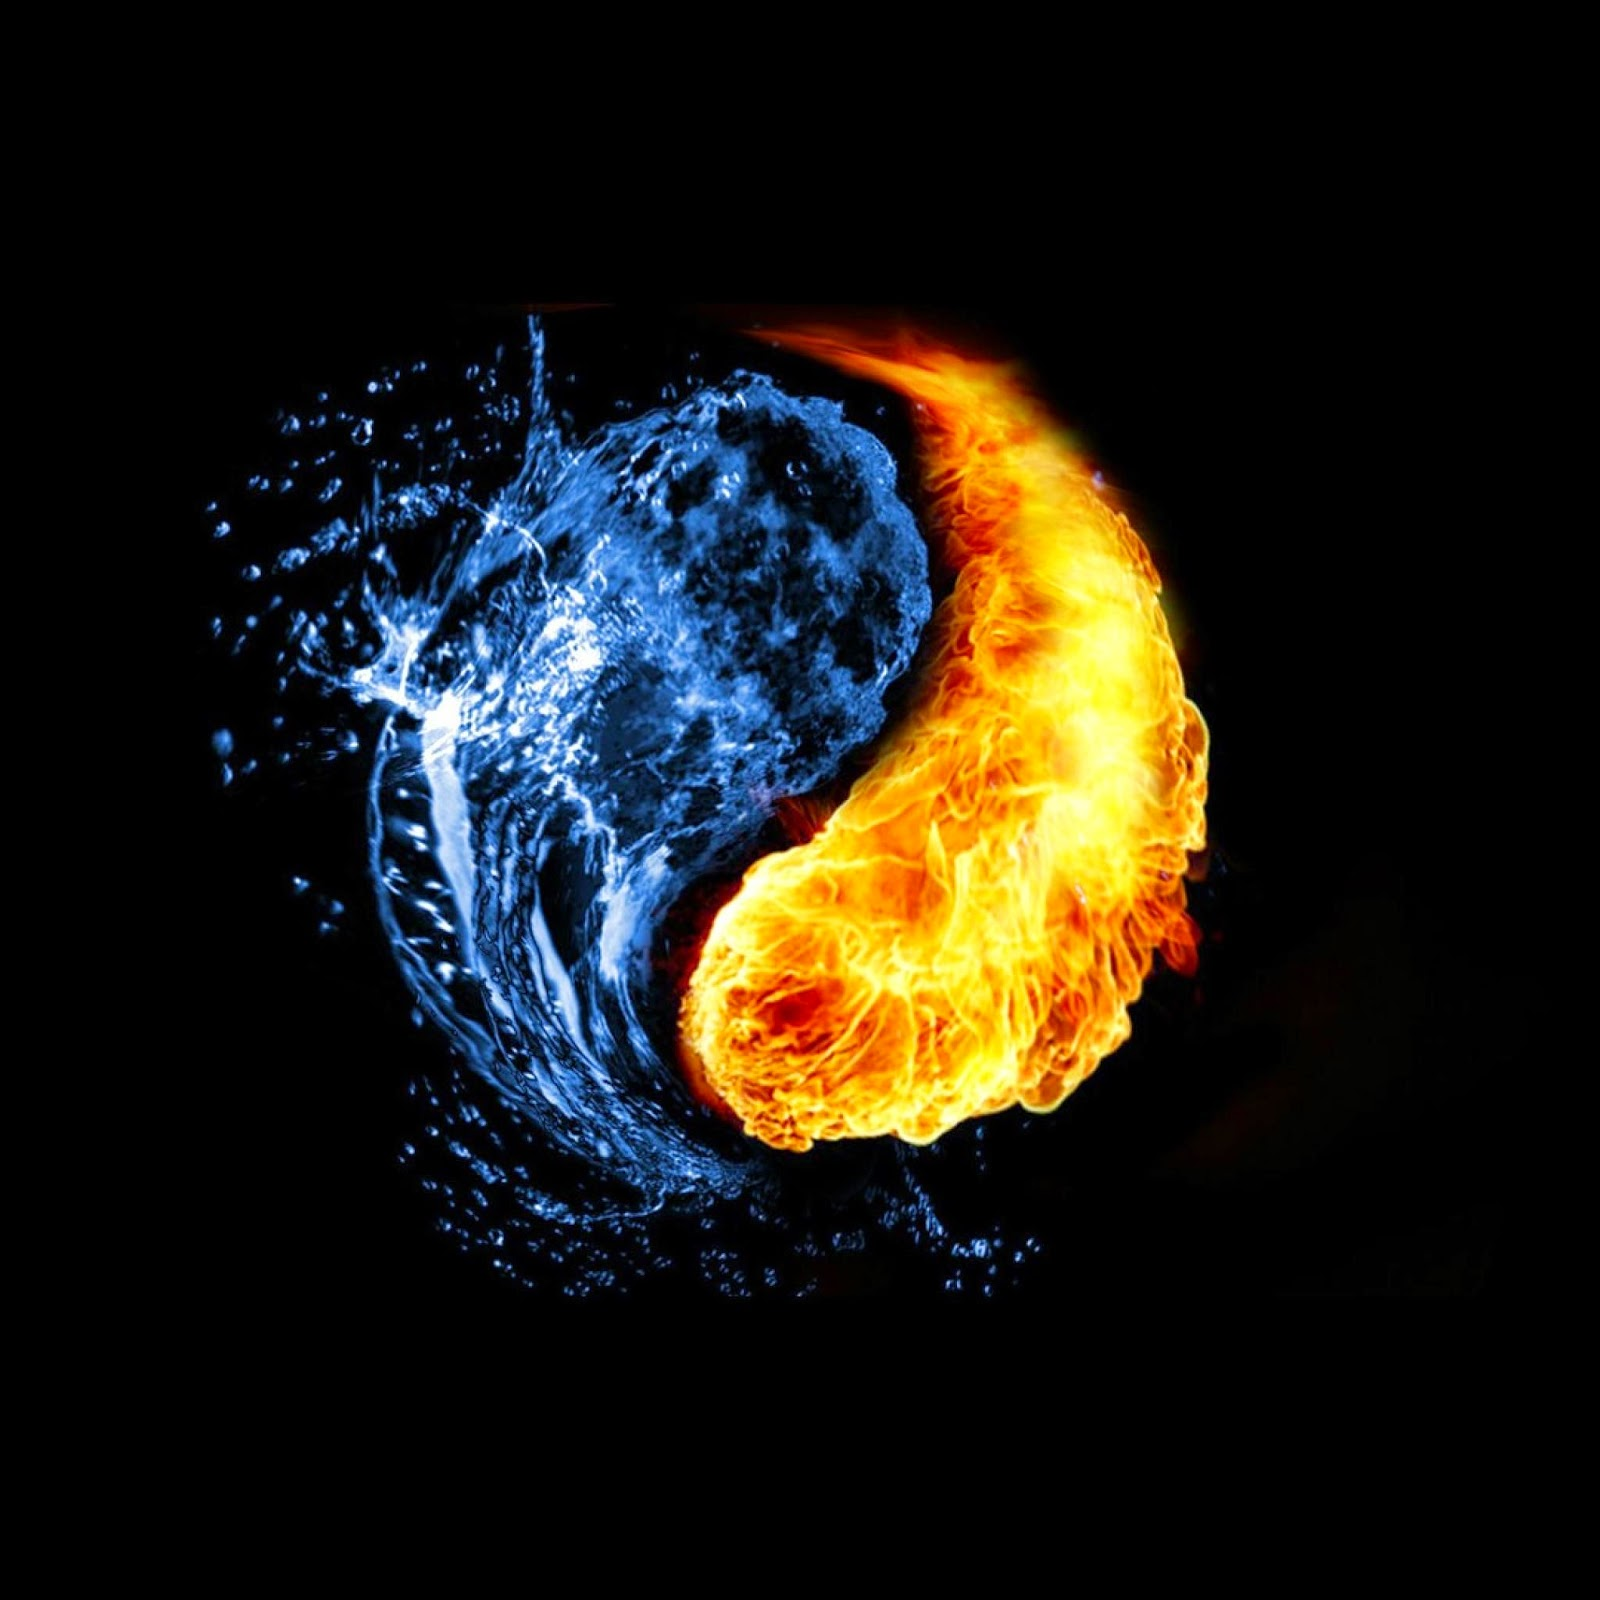 abstract yin yang wallpaper with water and fire yin yang wallpaperjpg 1600x1600